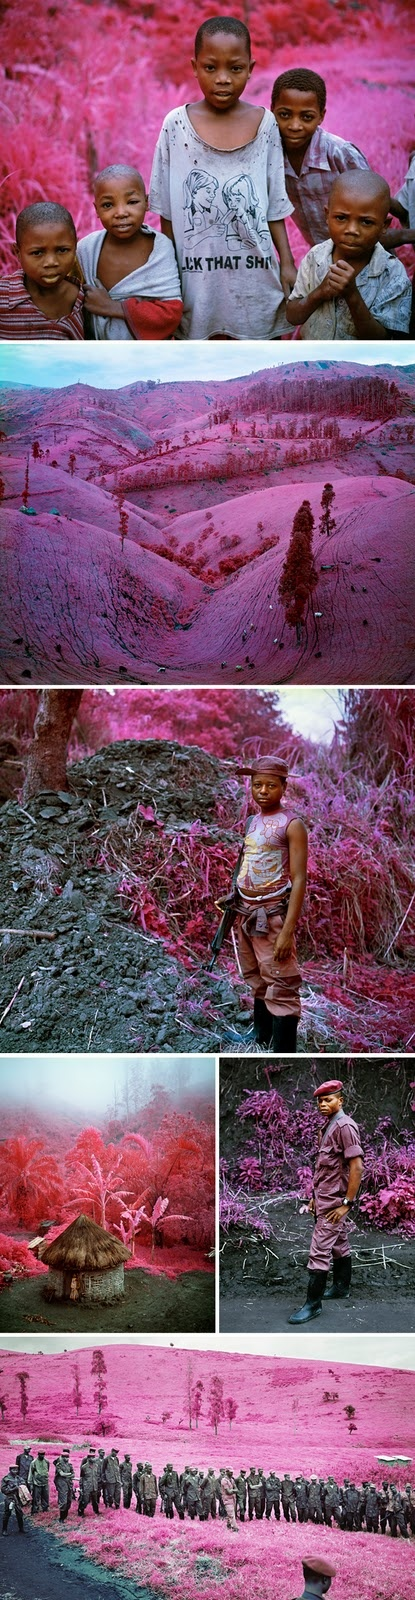 """I recently saw these photos taken by Richard Mosse and was struck dumb by the contrast of such a loud and festive color and the subject matter - wartorn Congo."""